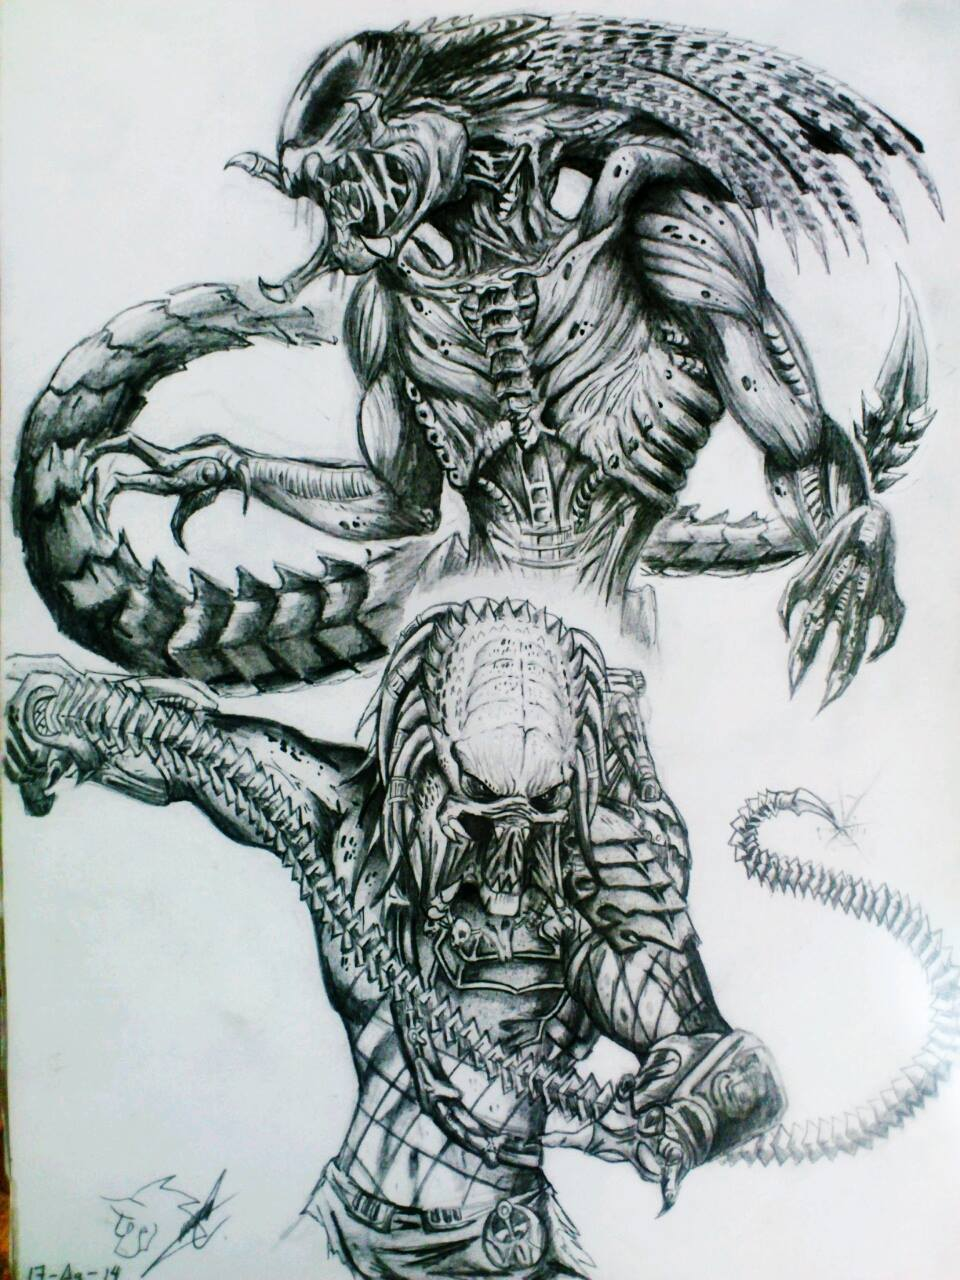 Predalien vs Predator wolf by AnubisKronos on DeviantArt